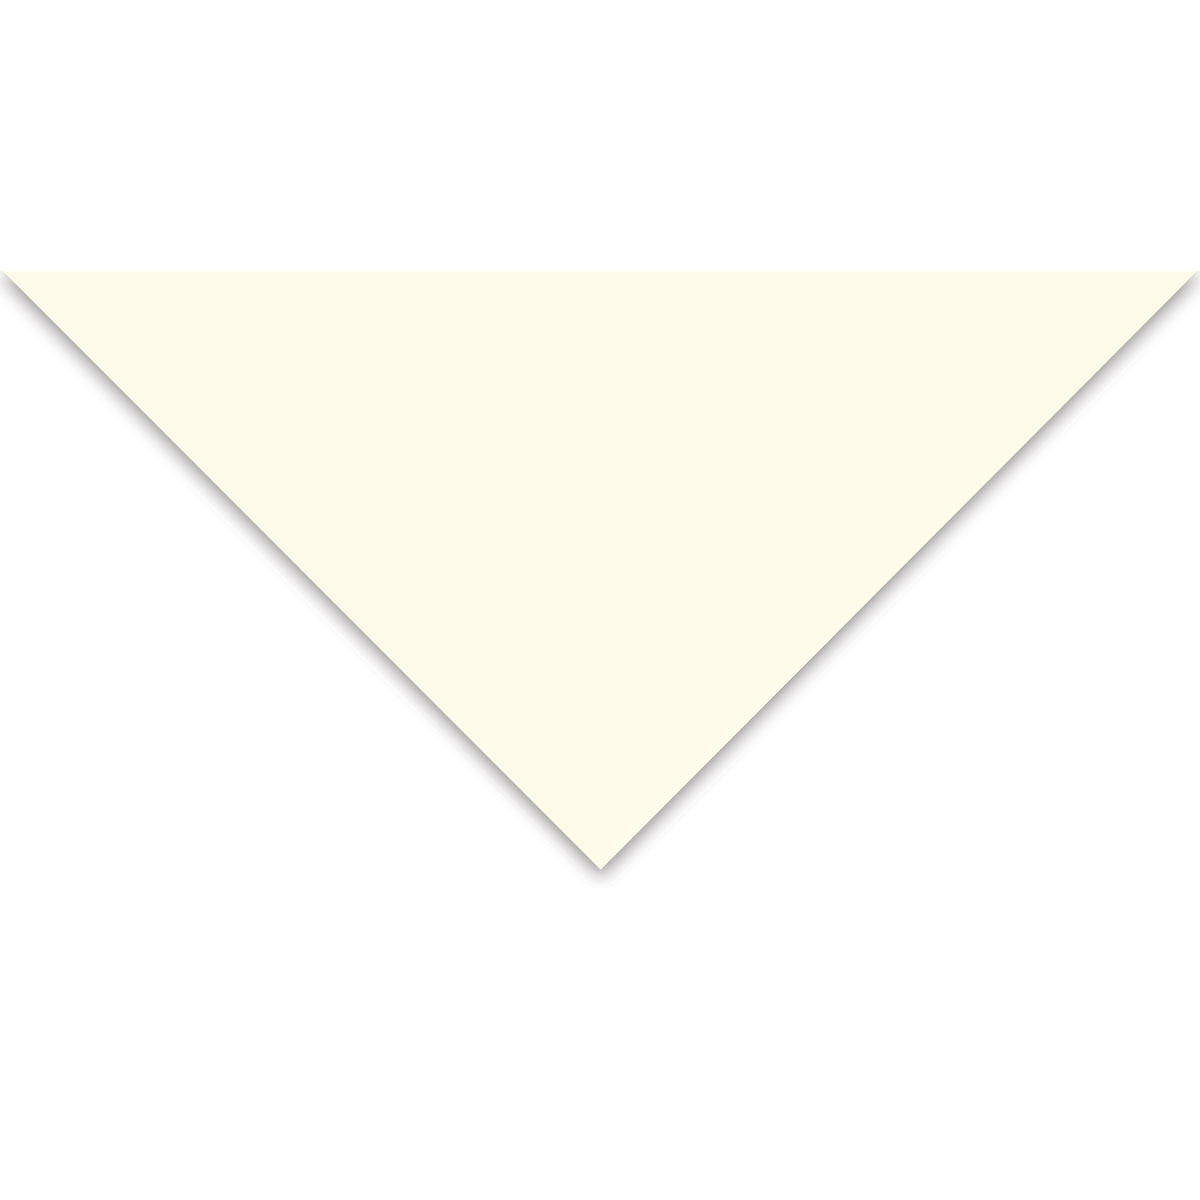 Strathmore Museum Mounting Board - 32 x 40 x 4-ply, Cream